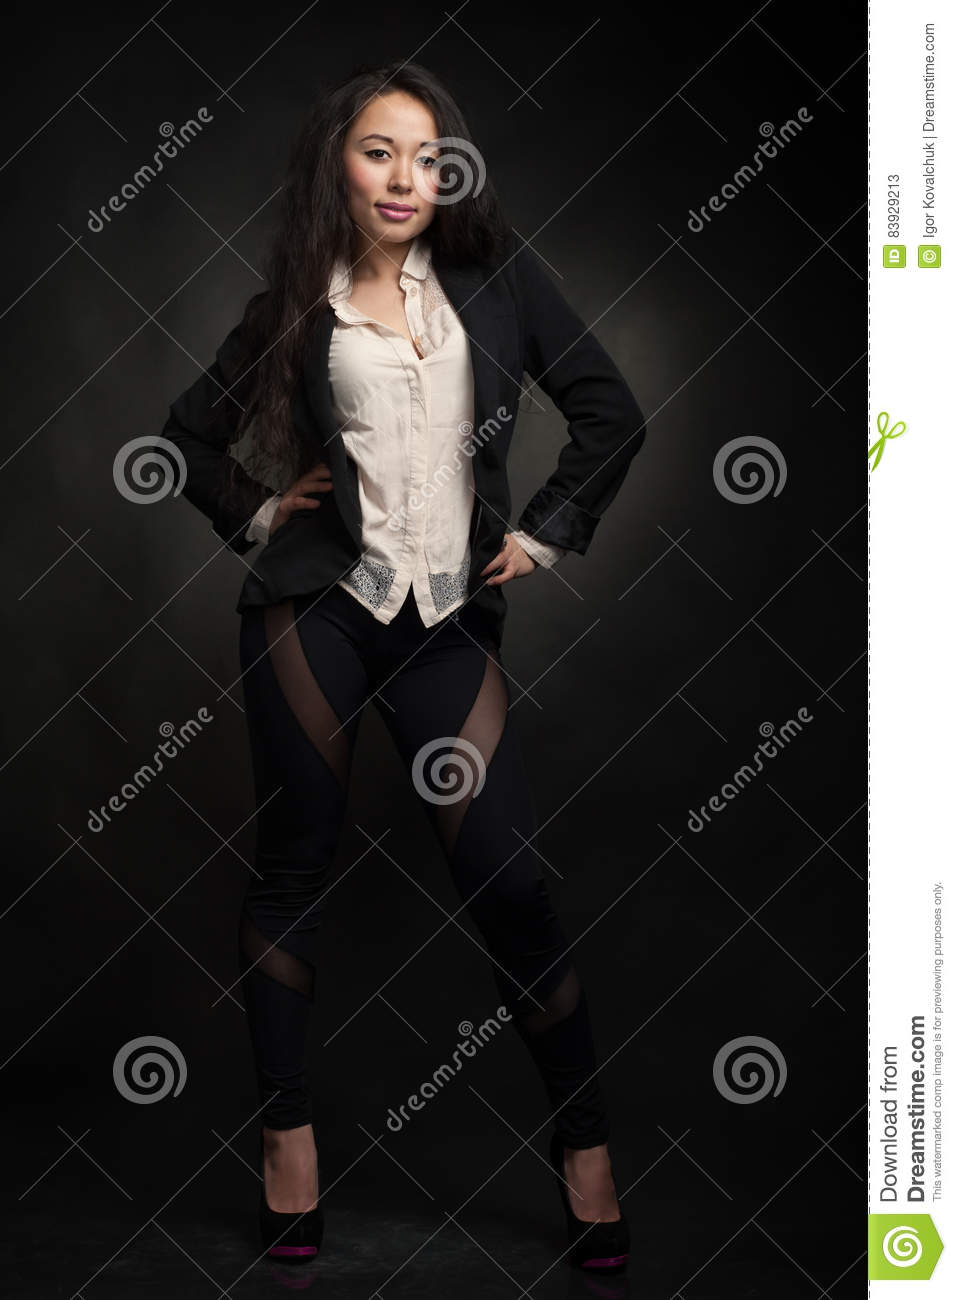 Naughty woman in jacket. Royalty-Free Stock Photo